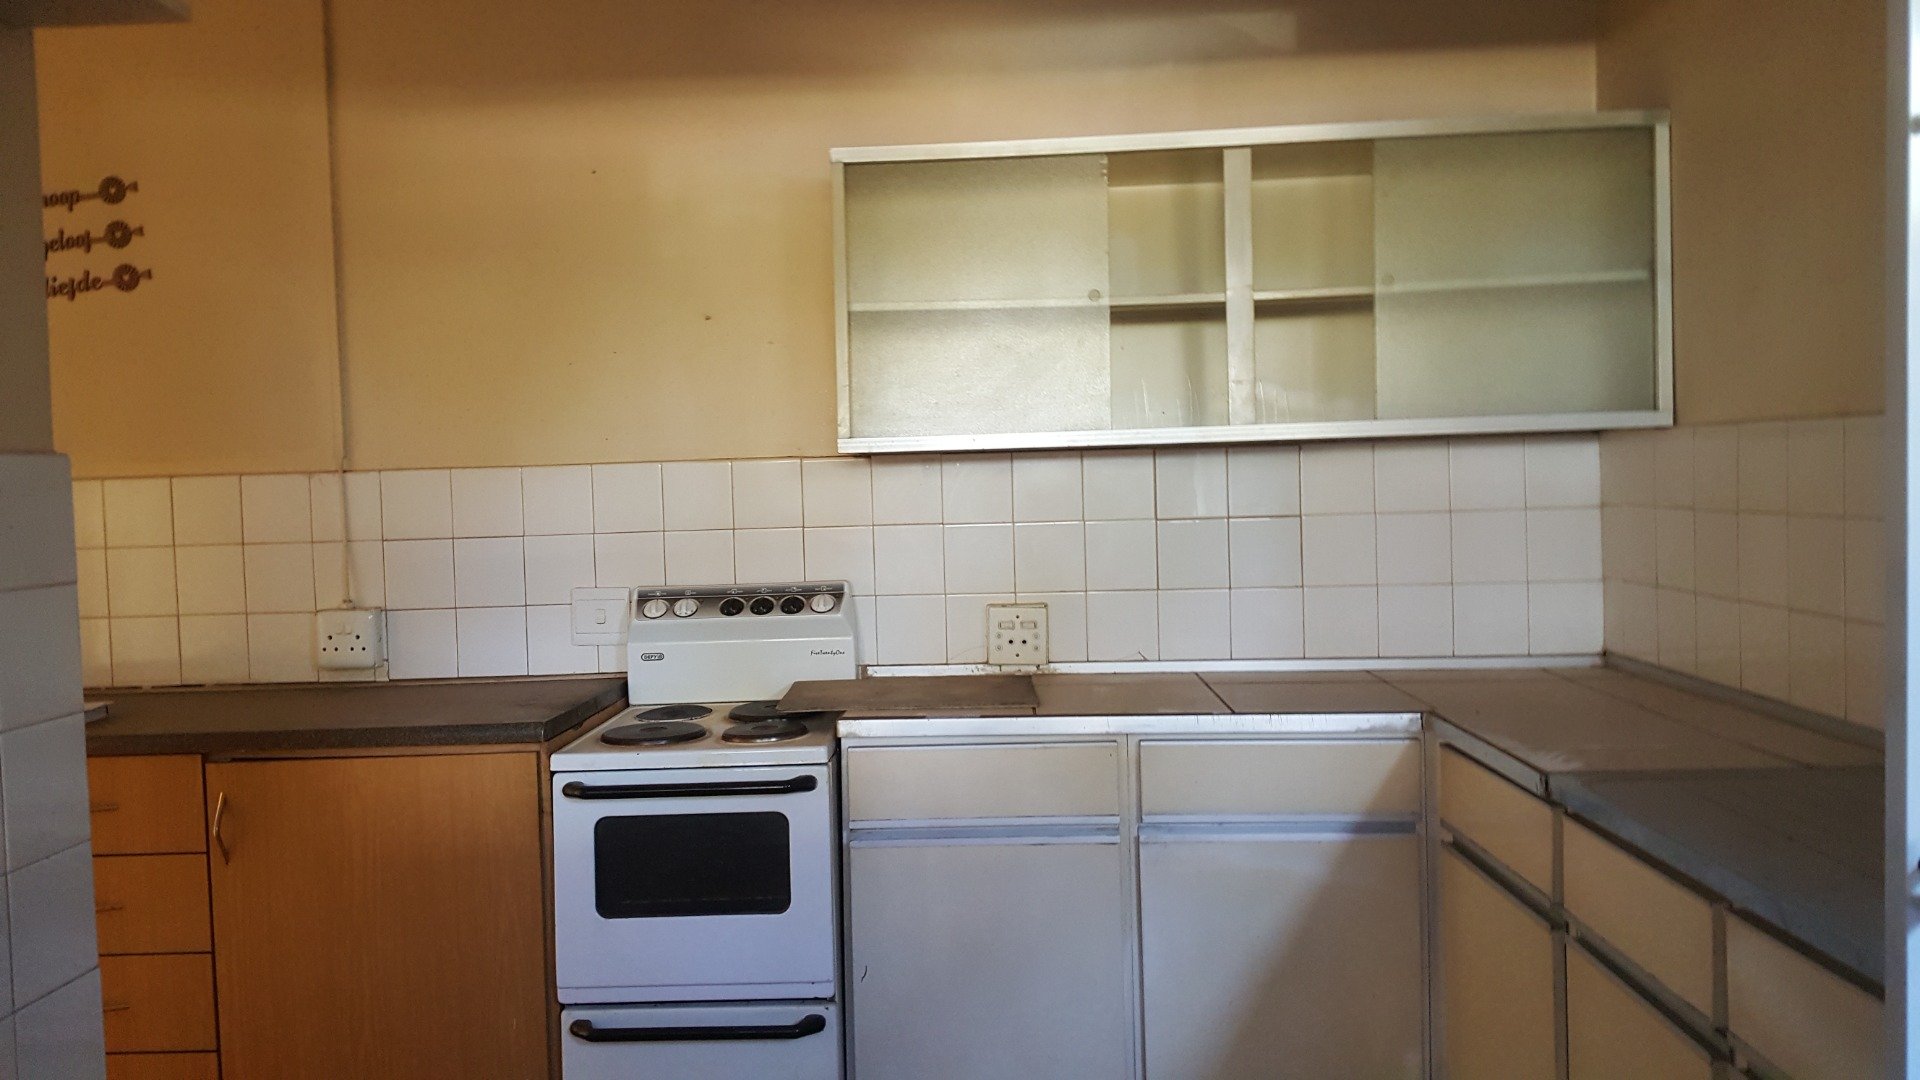 3 Bedroom Townhouse For Sale in Sasolburg Ext 23